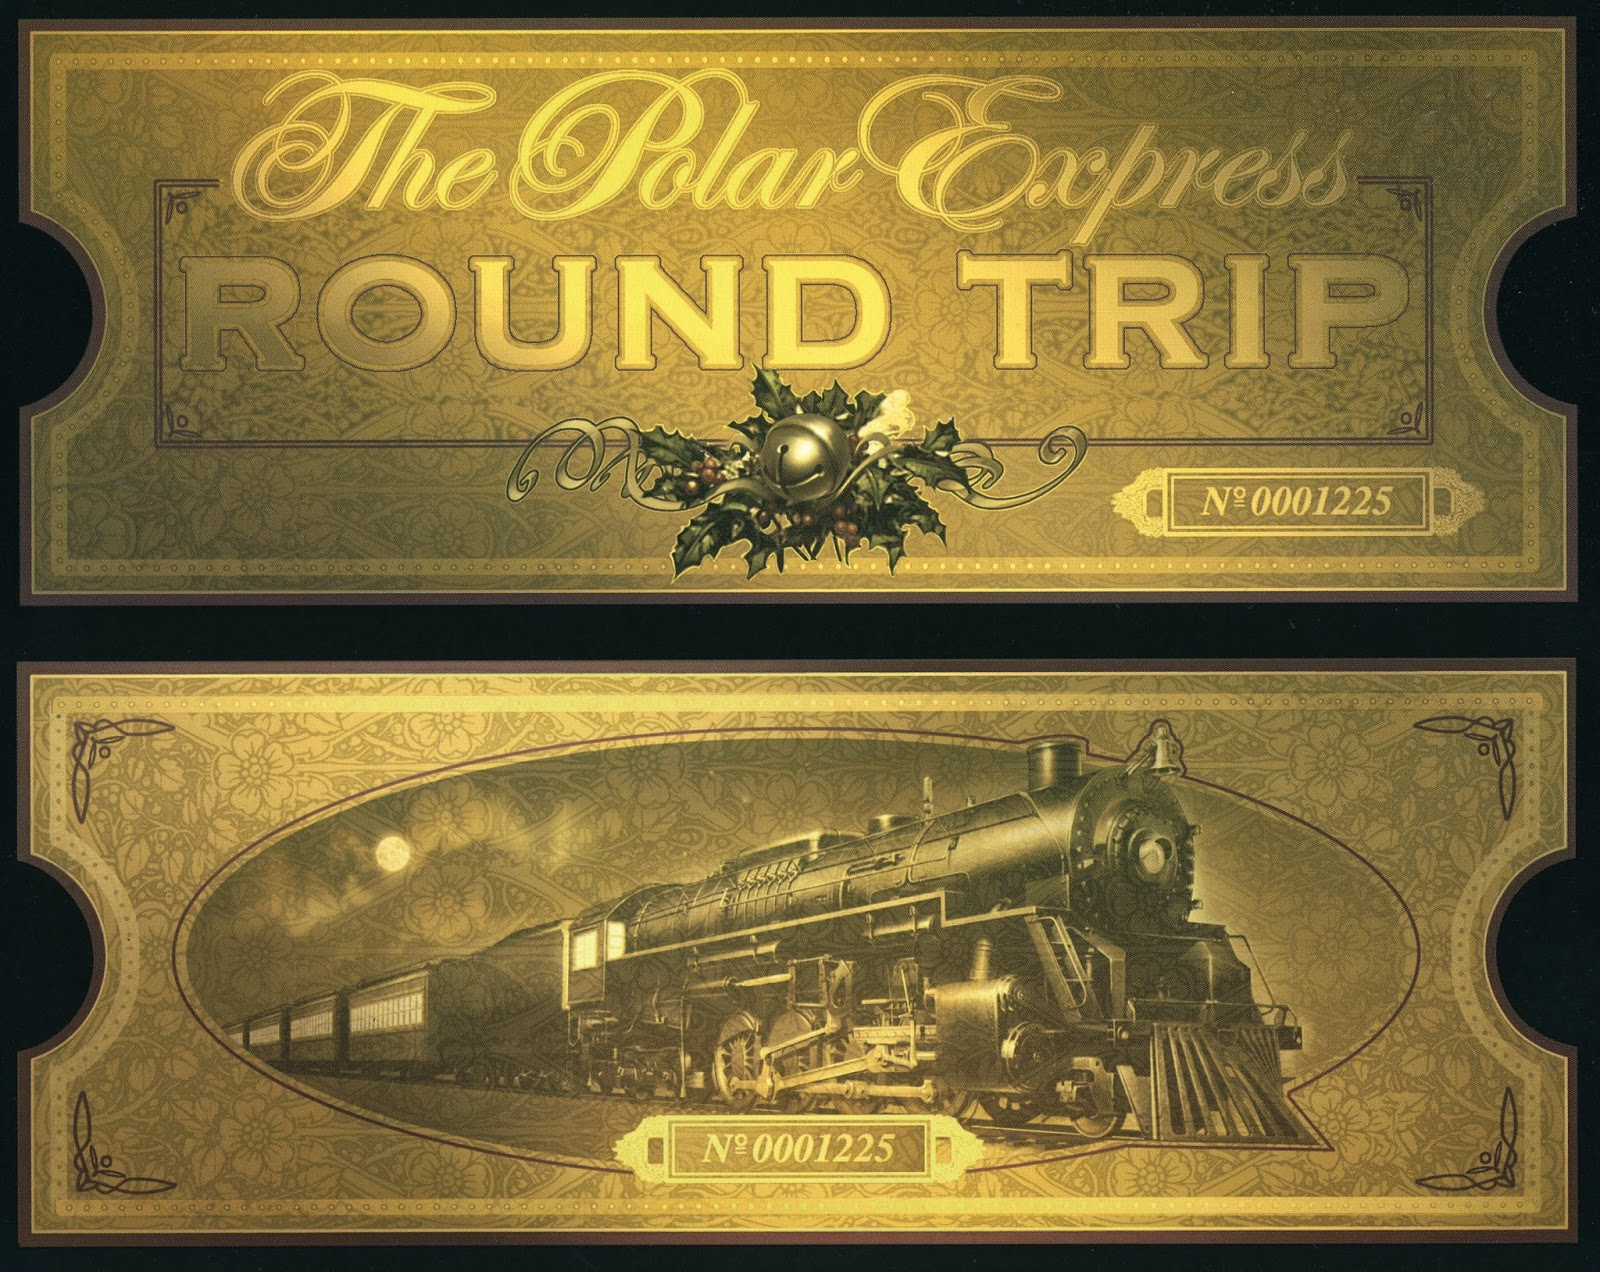 polar express golden ticket template - for the love of the child the polar express birthday